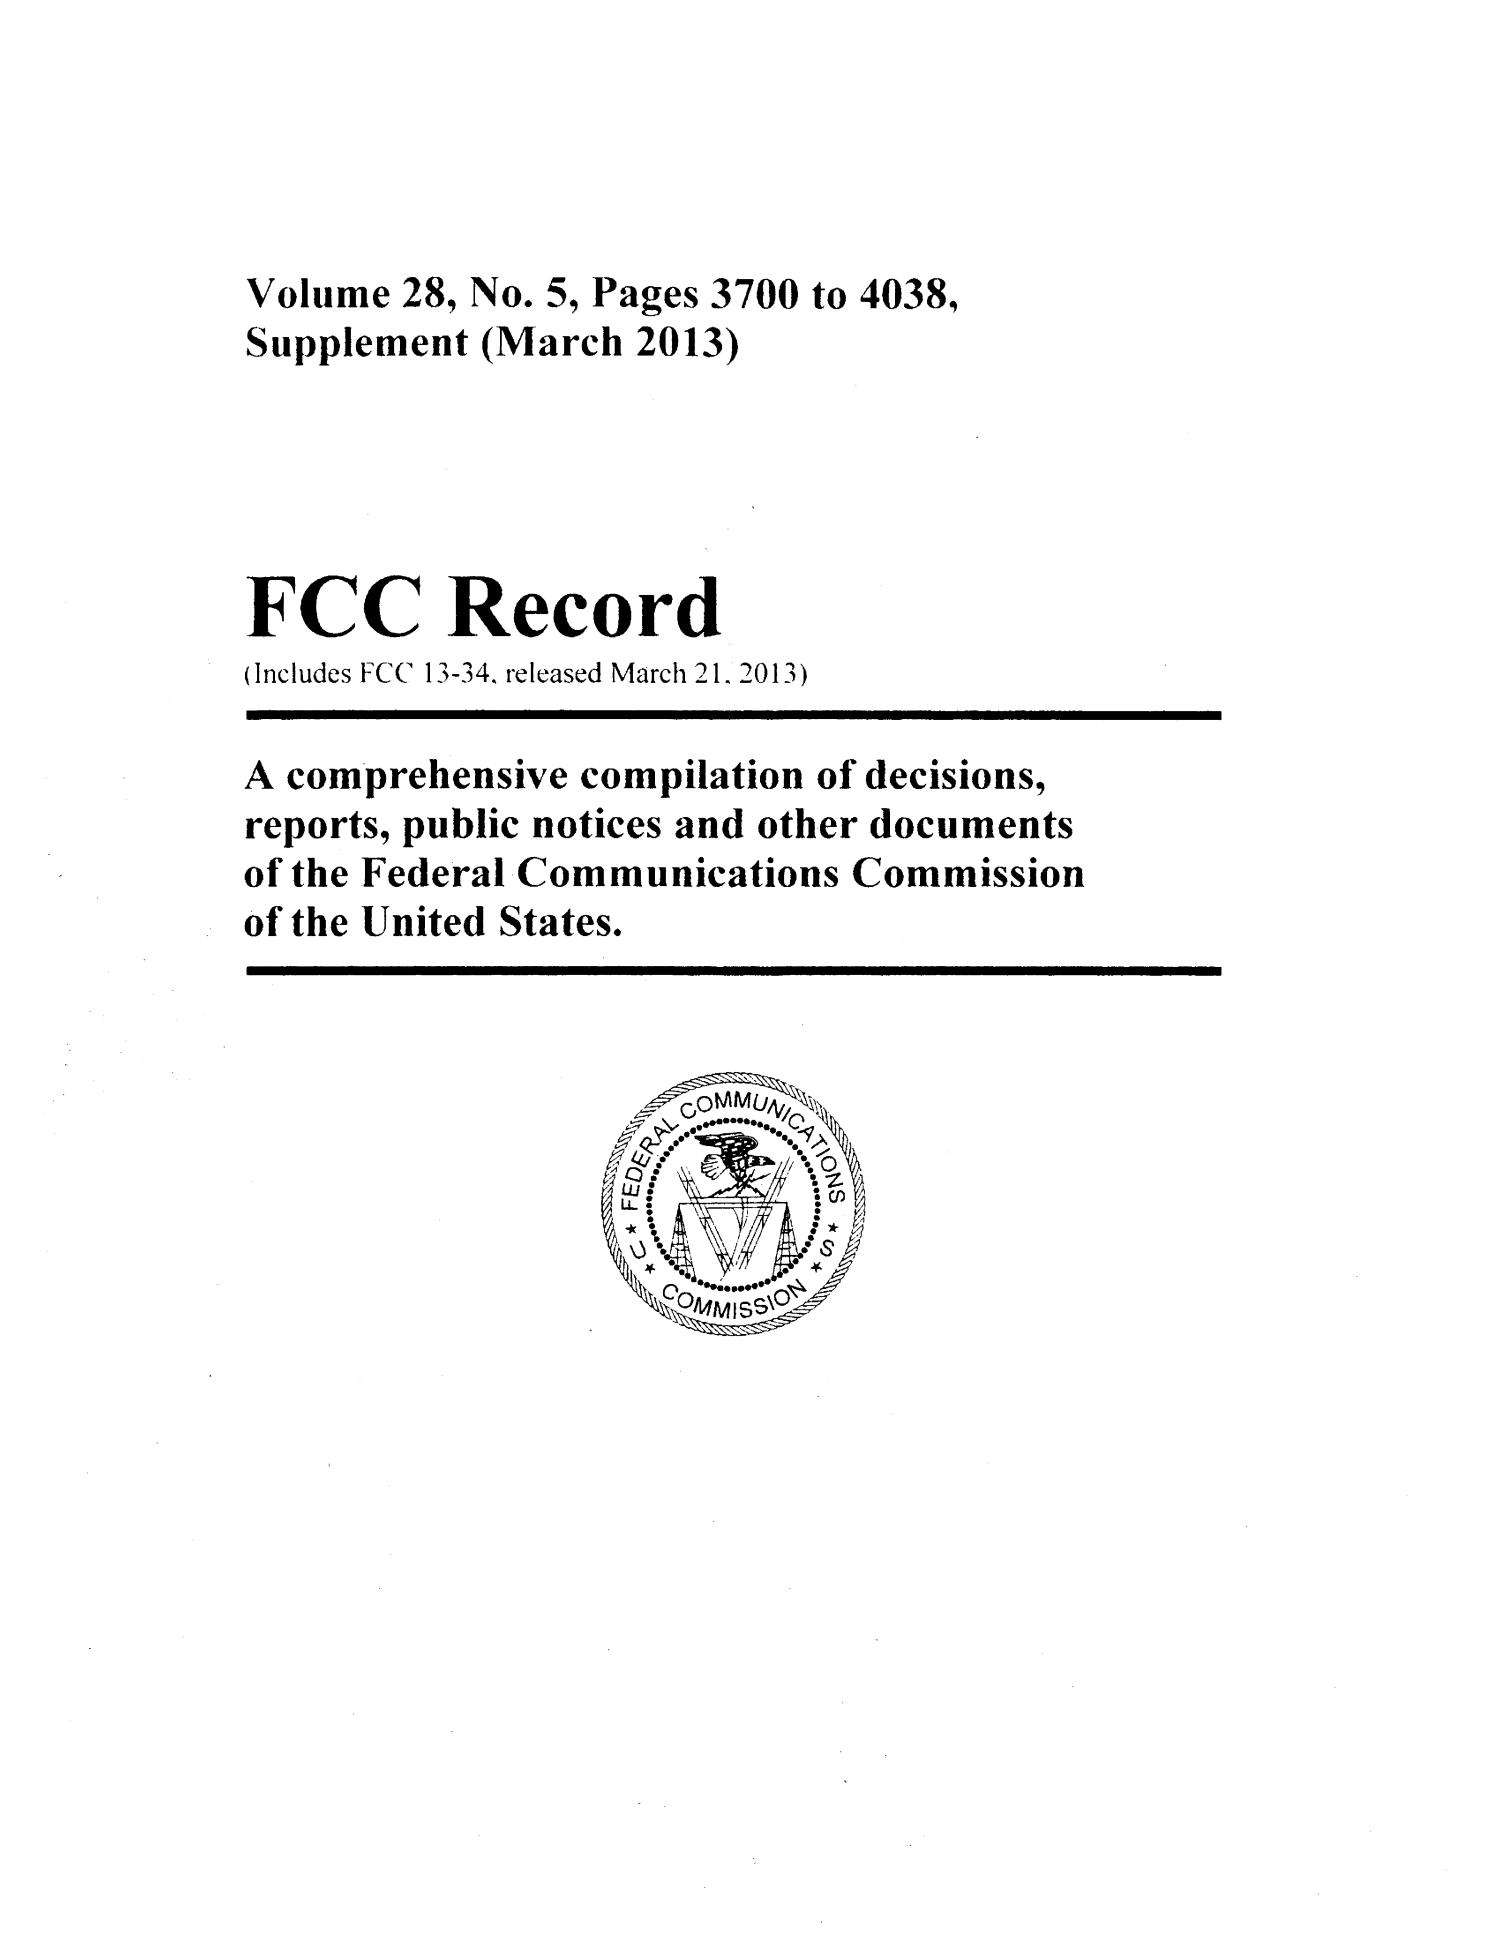 FCC Record, Volume 28, No. 5, Pages 3700 to 4038, Supplement (March 2013)                                                                                                      Title Page